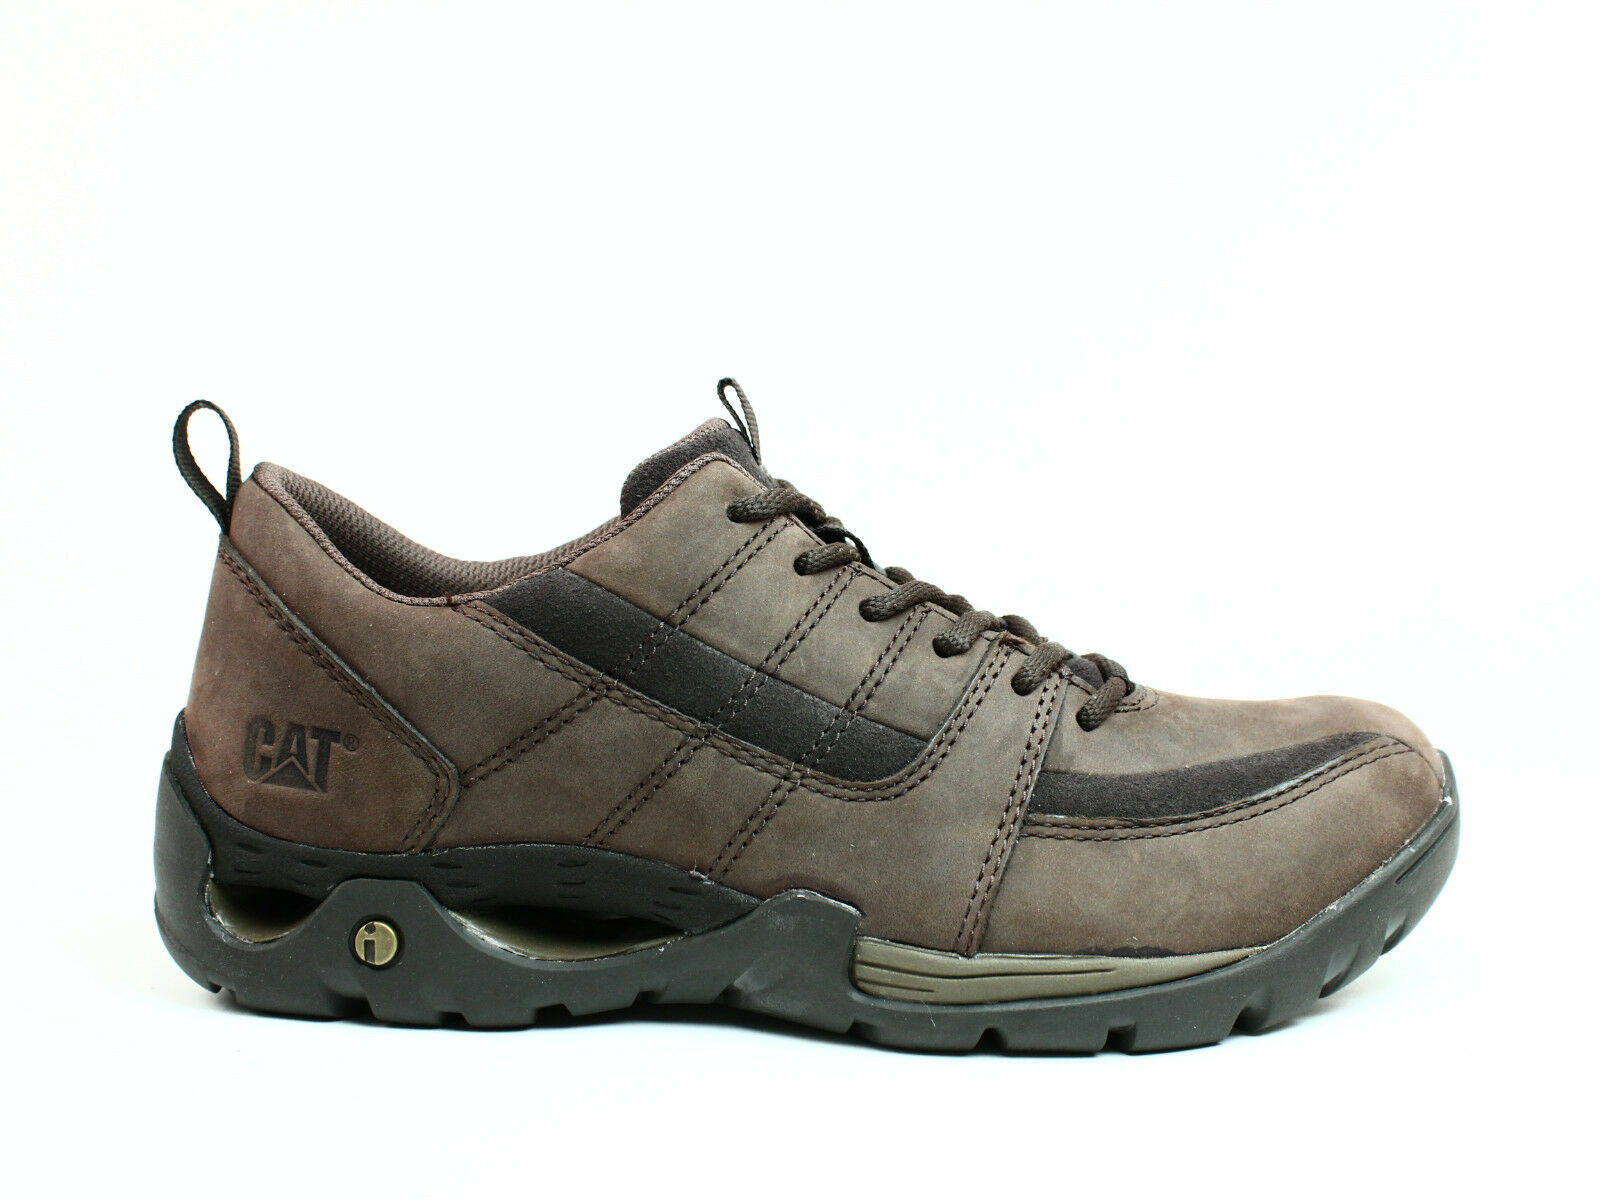 Scarpe casual da uomo Caterpillar CRITERION uomos Work Brown Casual Brown Work Leather/Nubuck Shoes Sneakers 4f936a